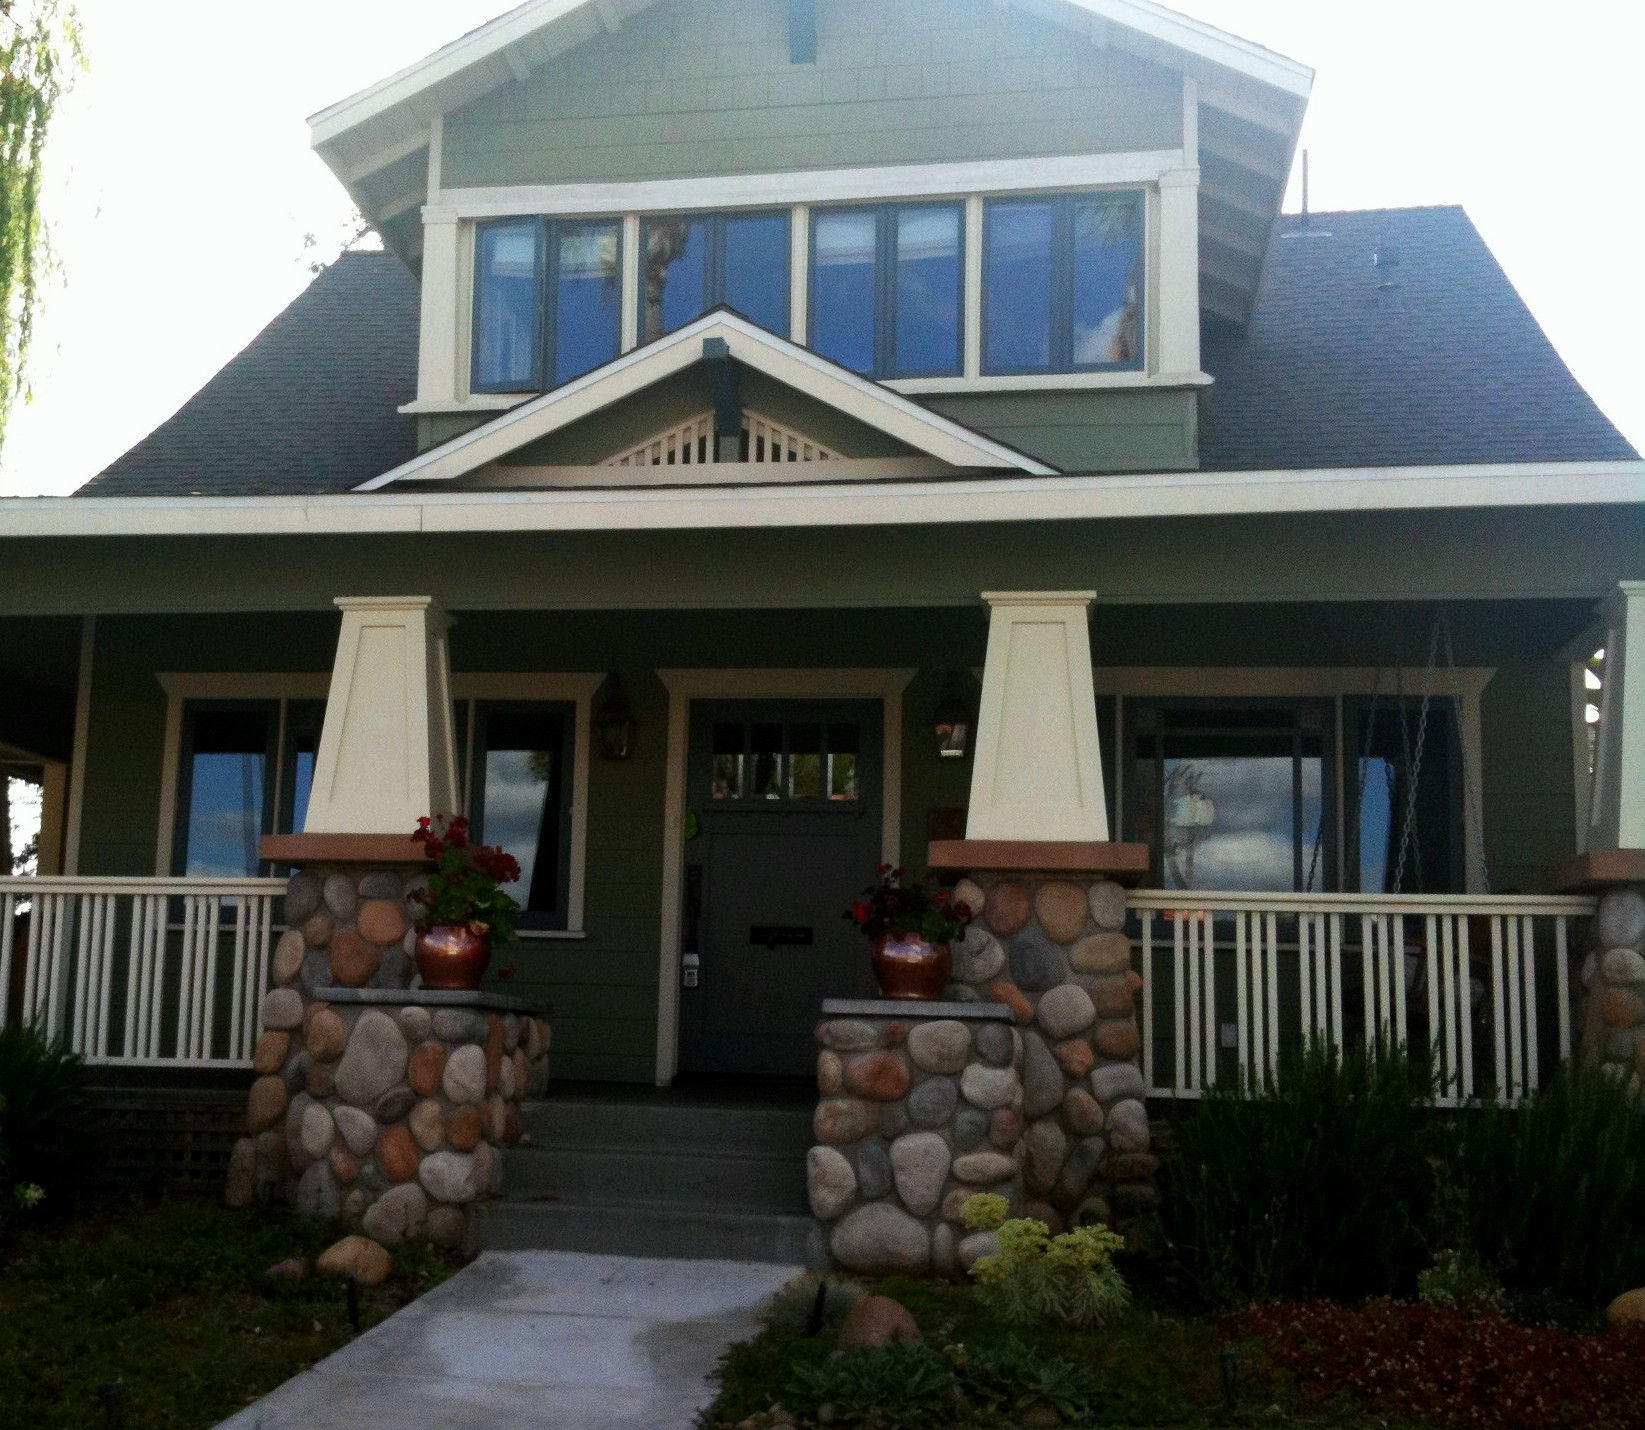 Craftsman style houses at home with cheri for New craftsman homes